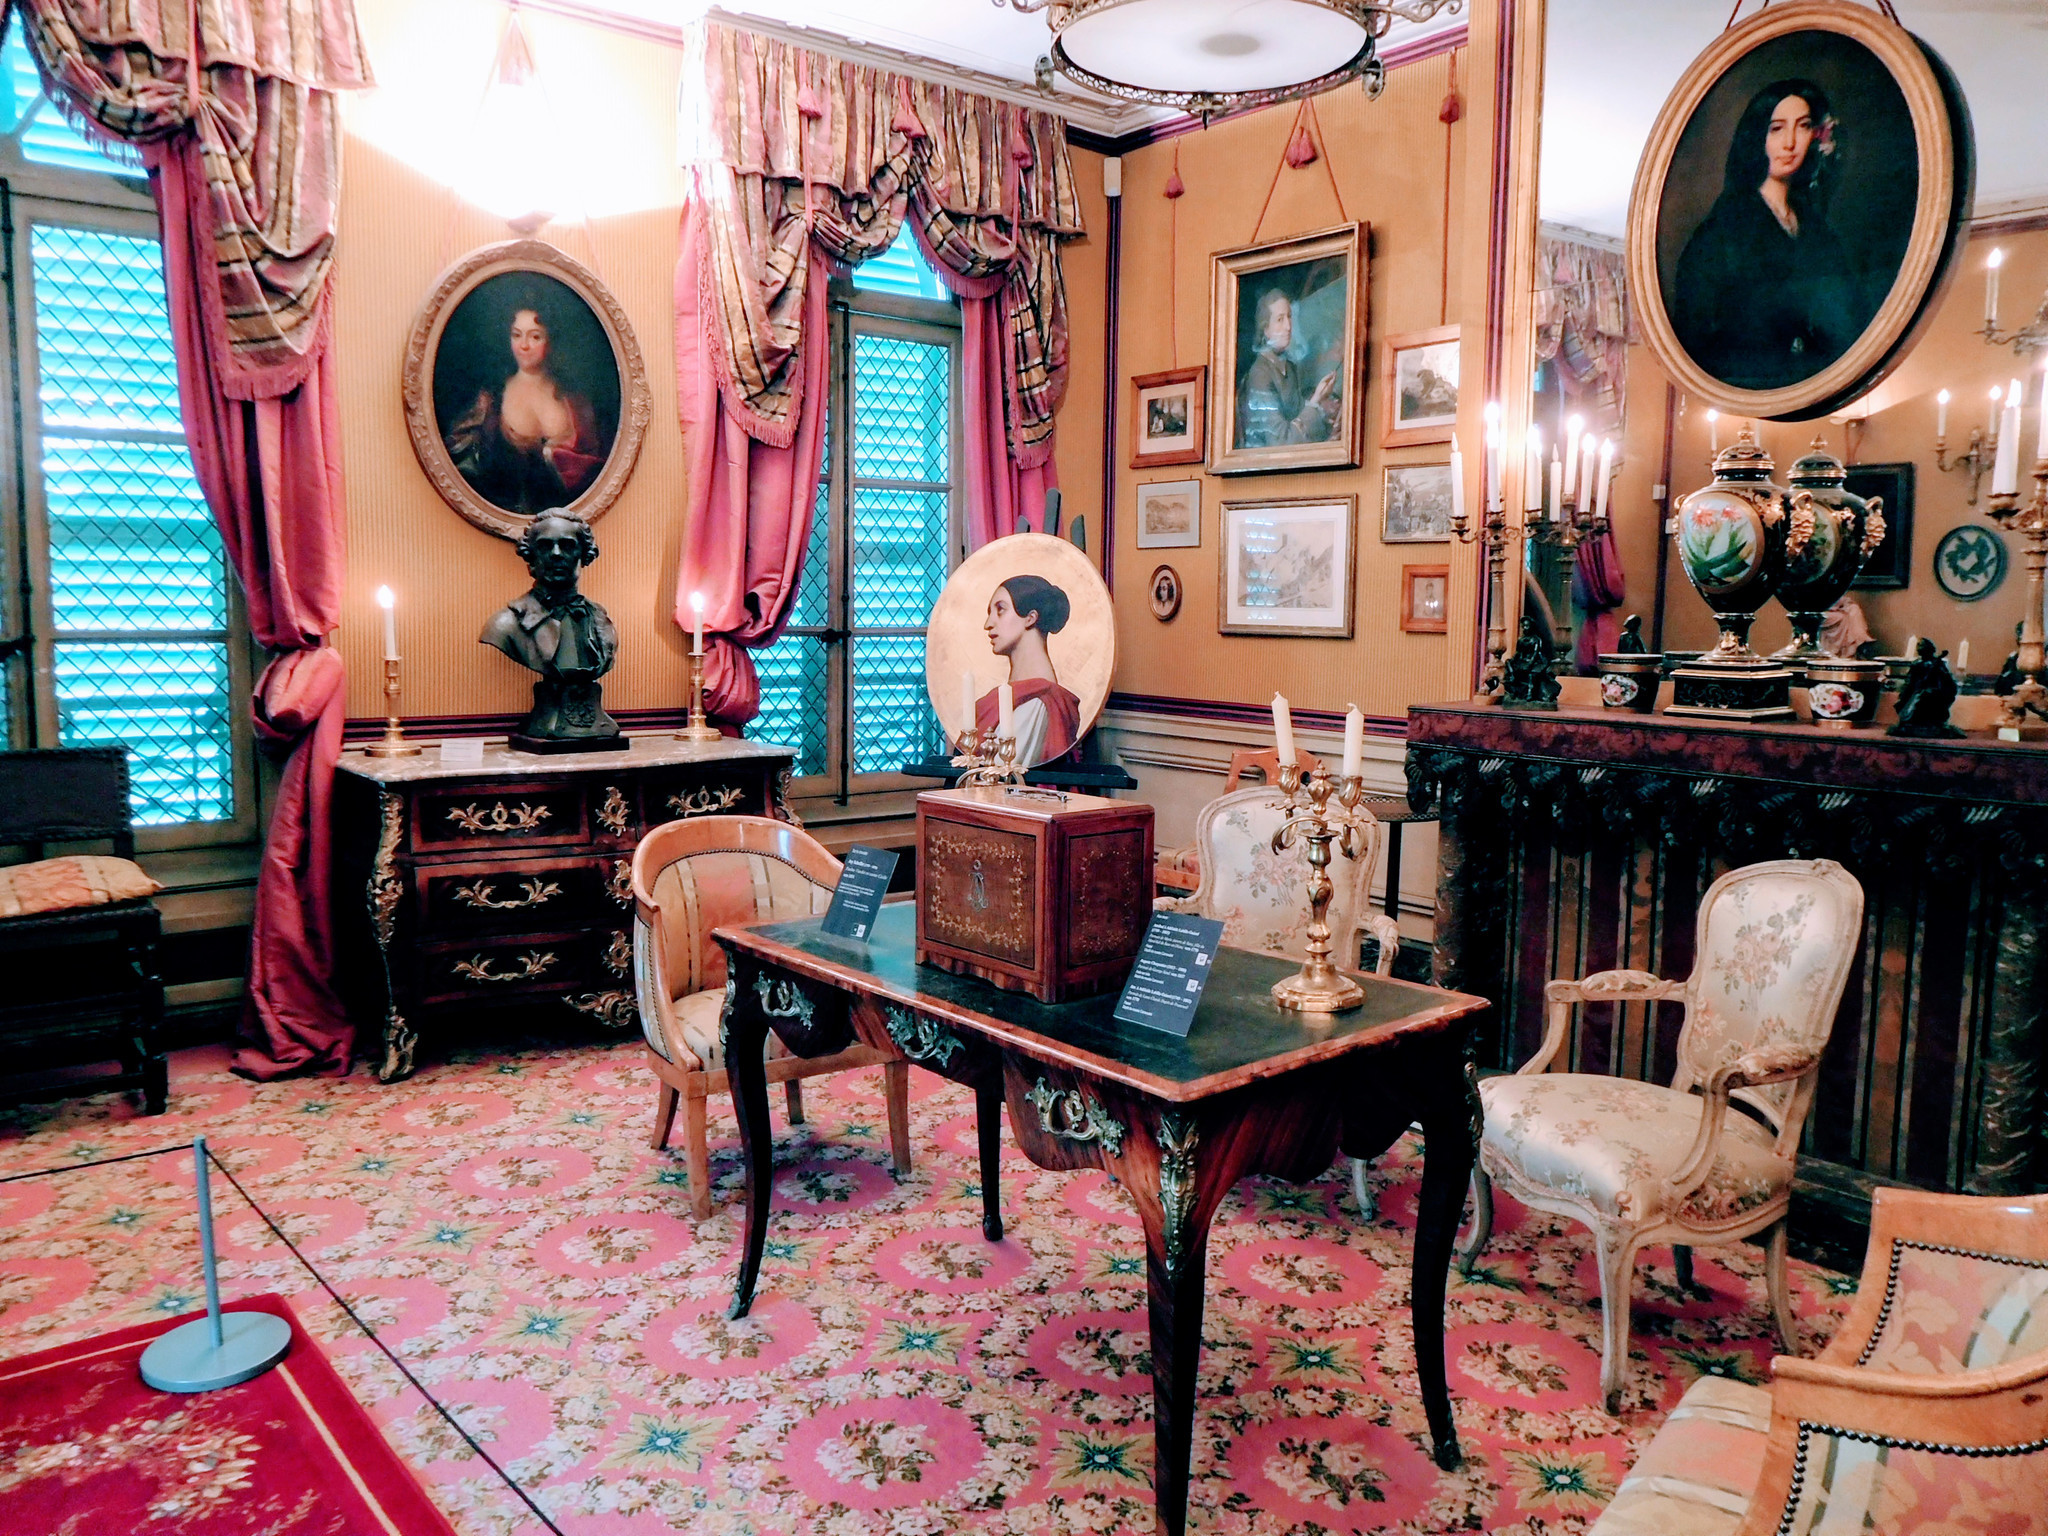 The George Sand room at the Museum of Romantics.